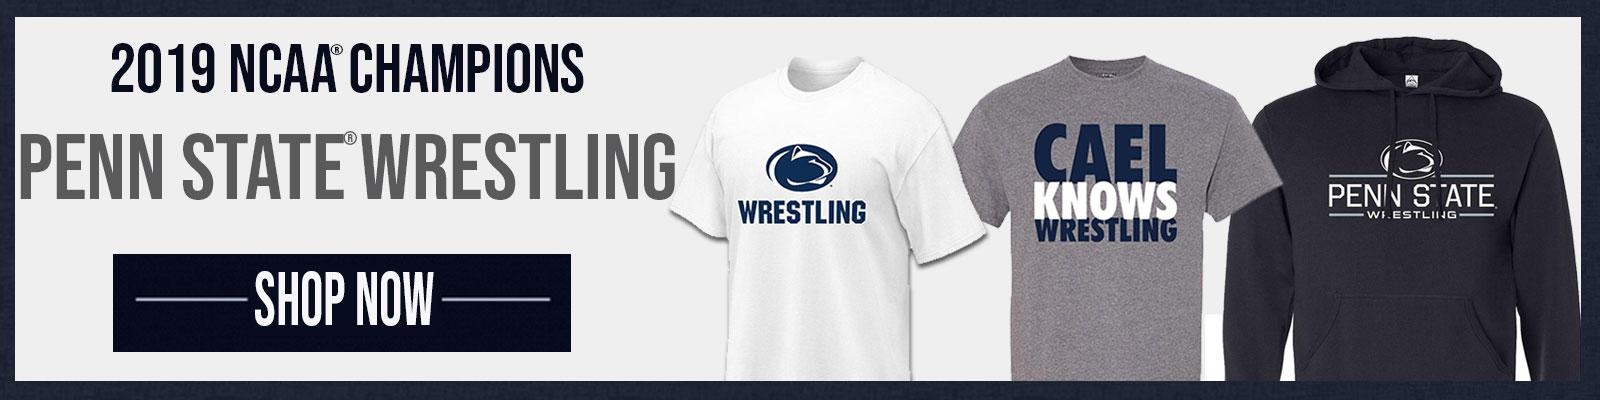 Shop our Penn State Wrestling Apparel